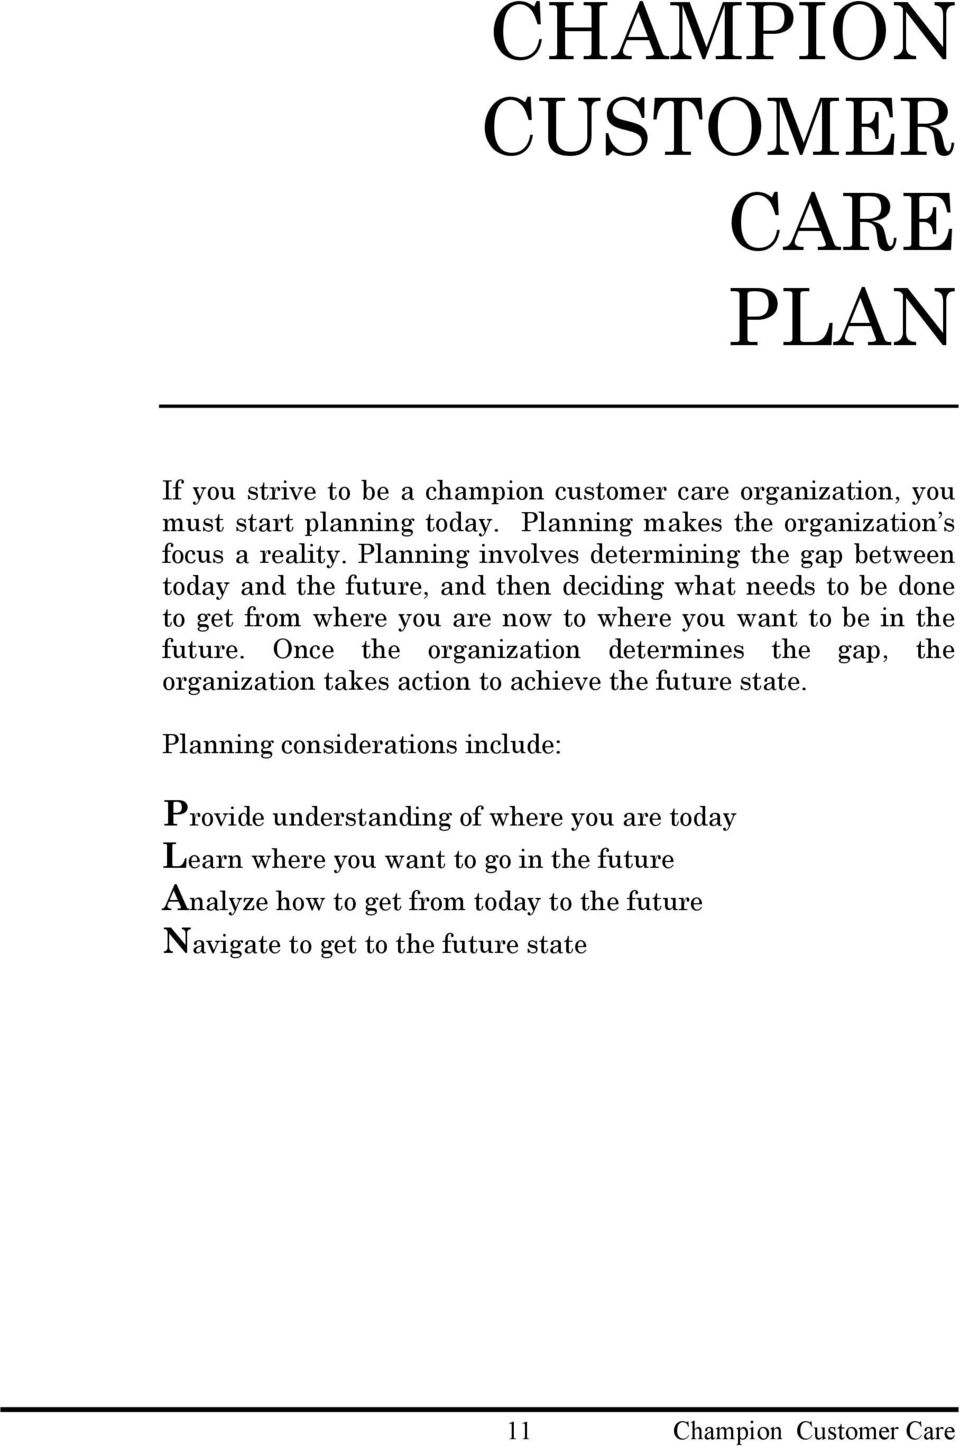 the future. Once the organization determines the gap, the organization takes action to achieve the future state.